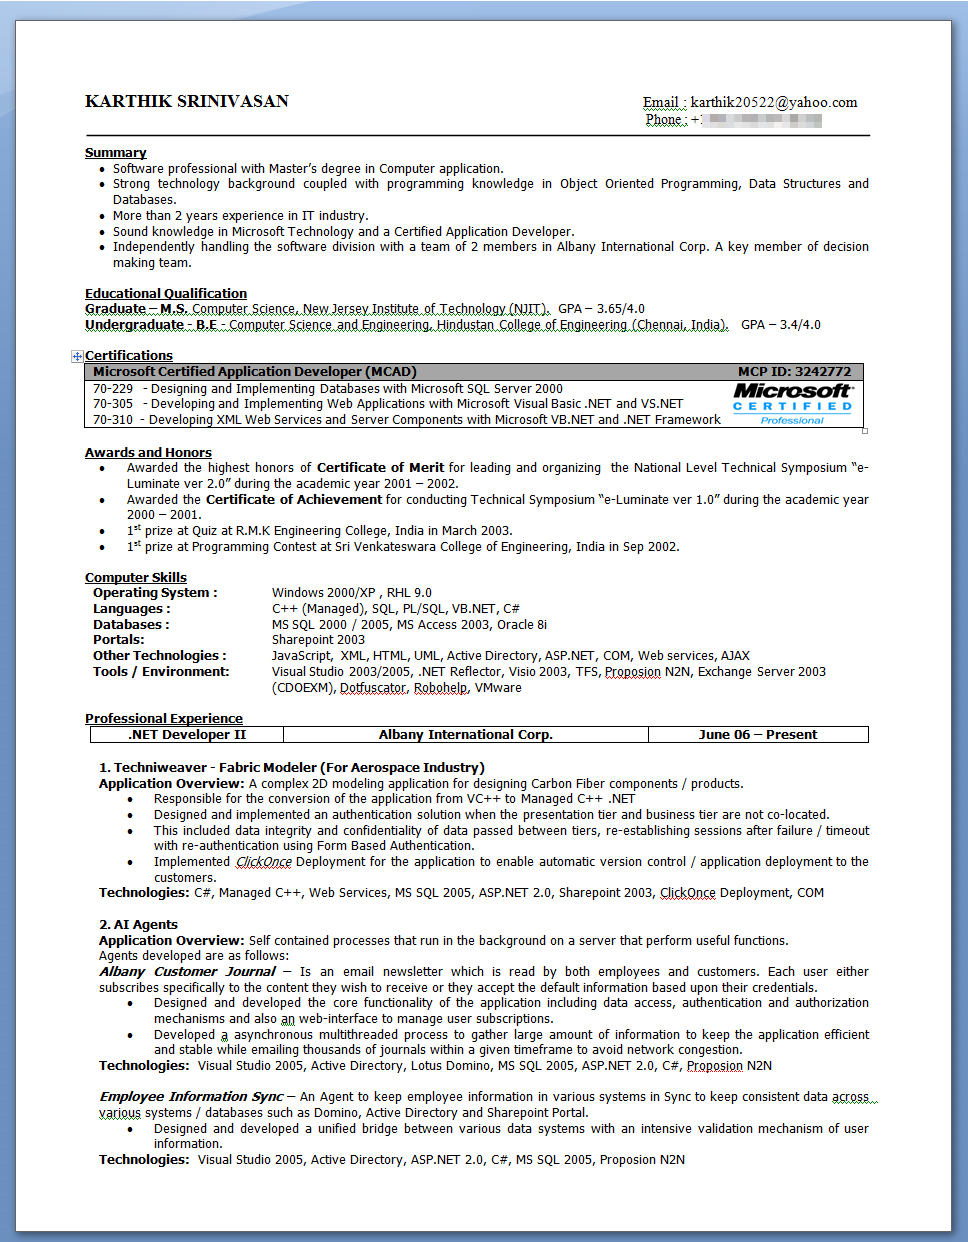 Resume examples for second job